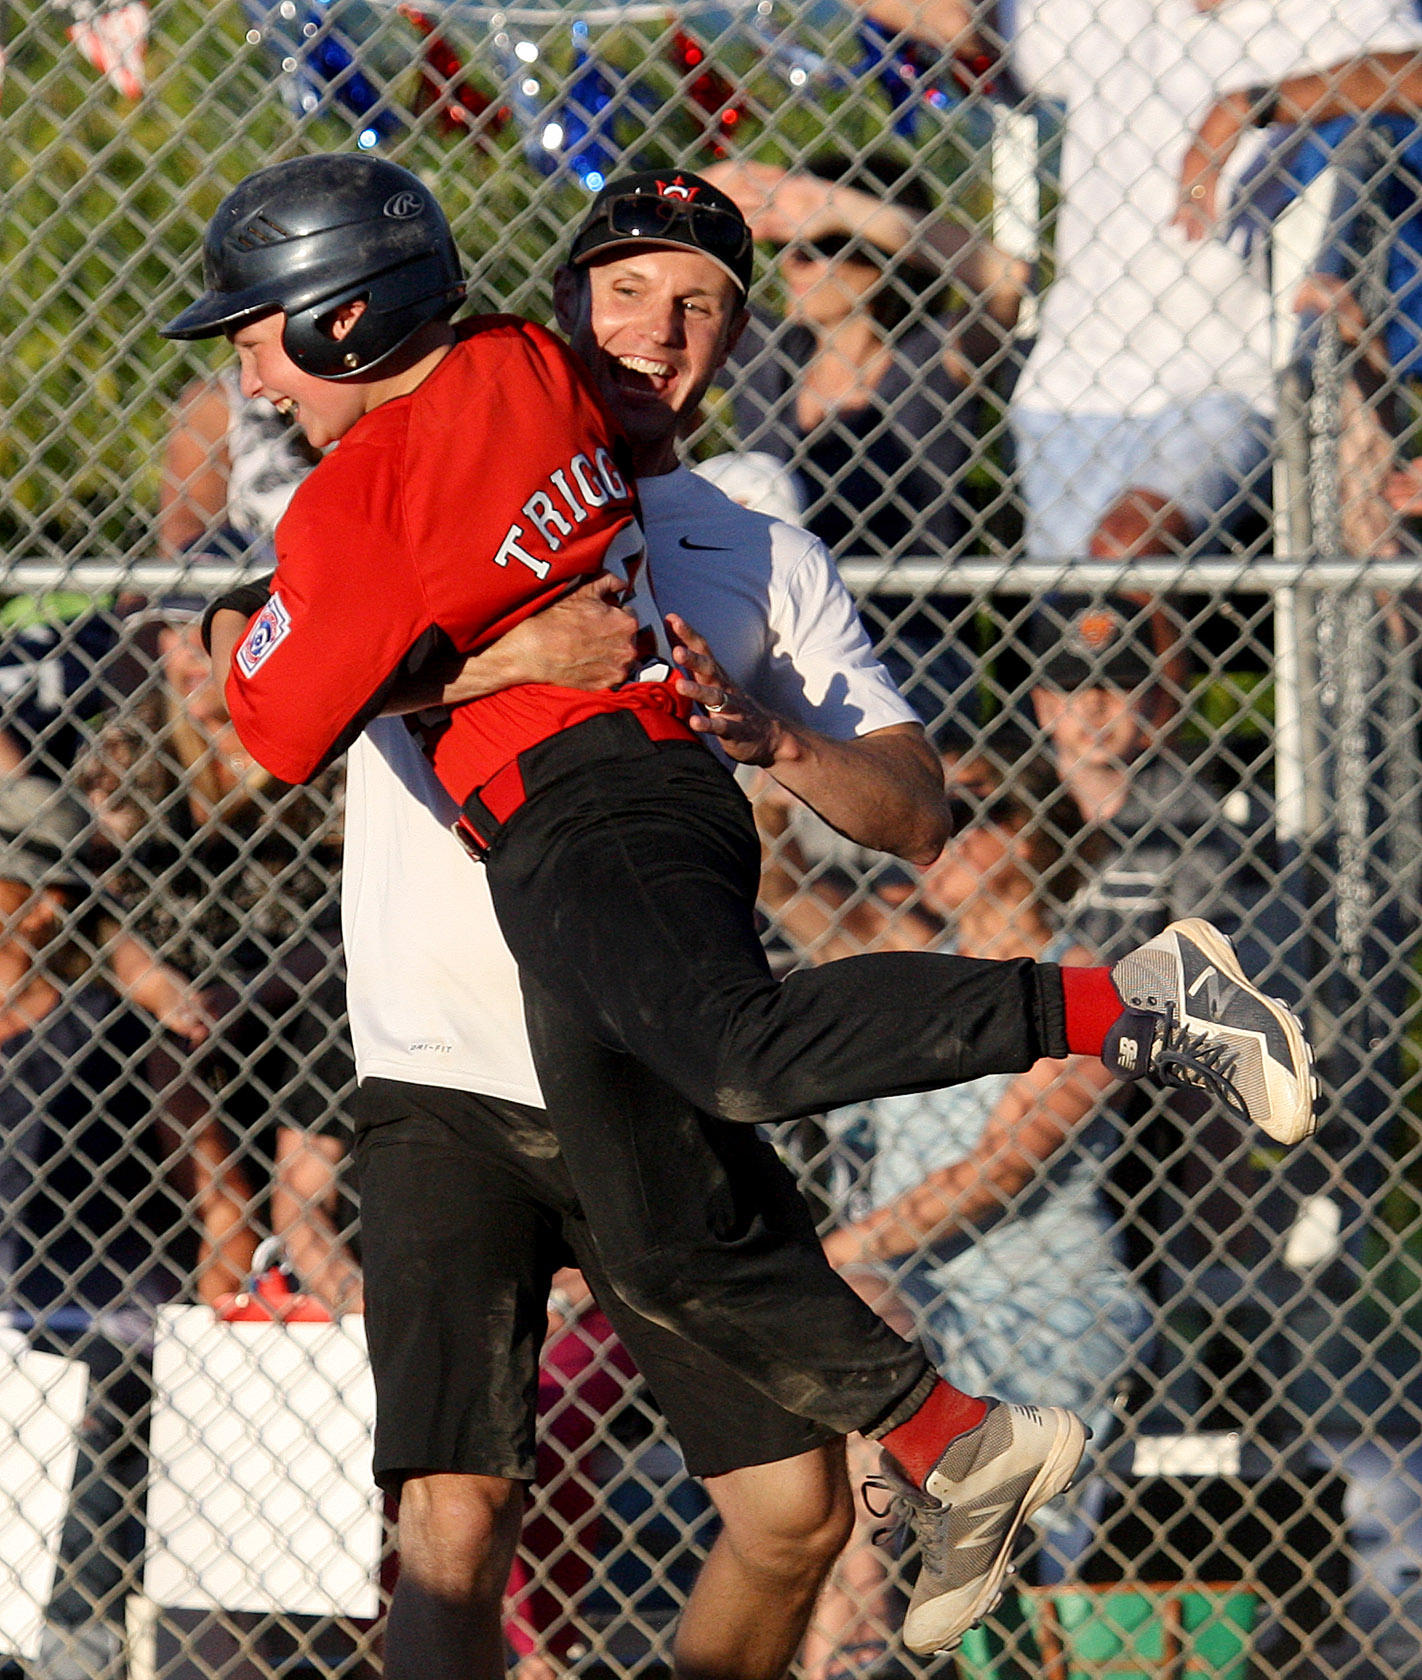 Bobby Trigg of West Seattle gets a lift from his coach after scoring the game winning run.